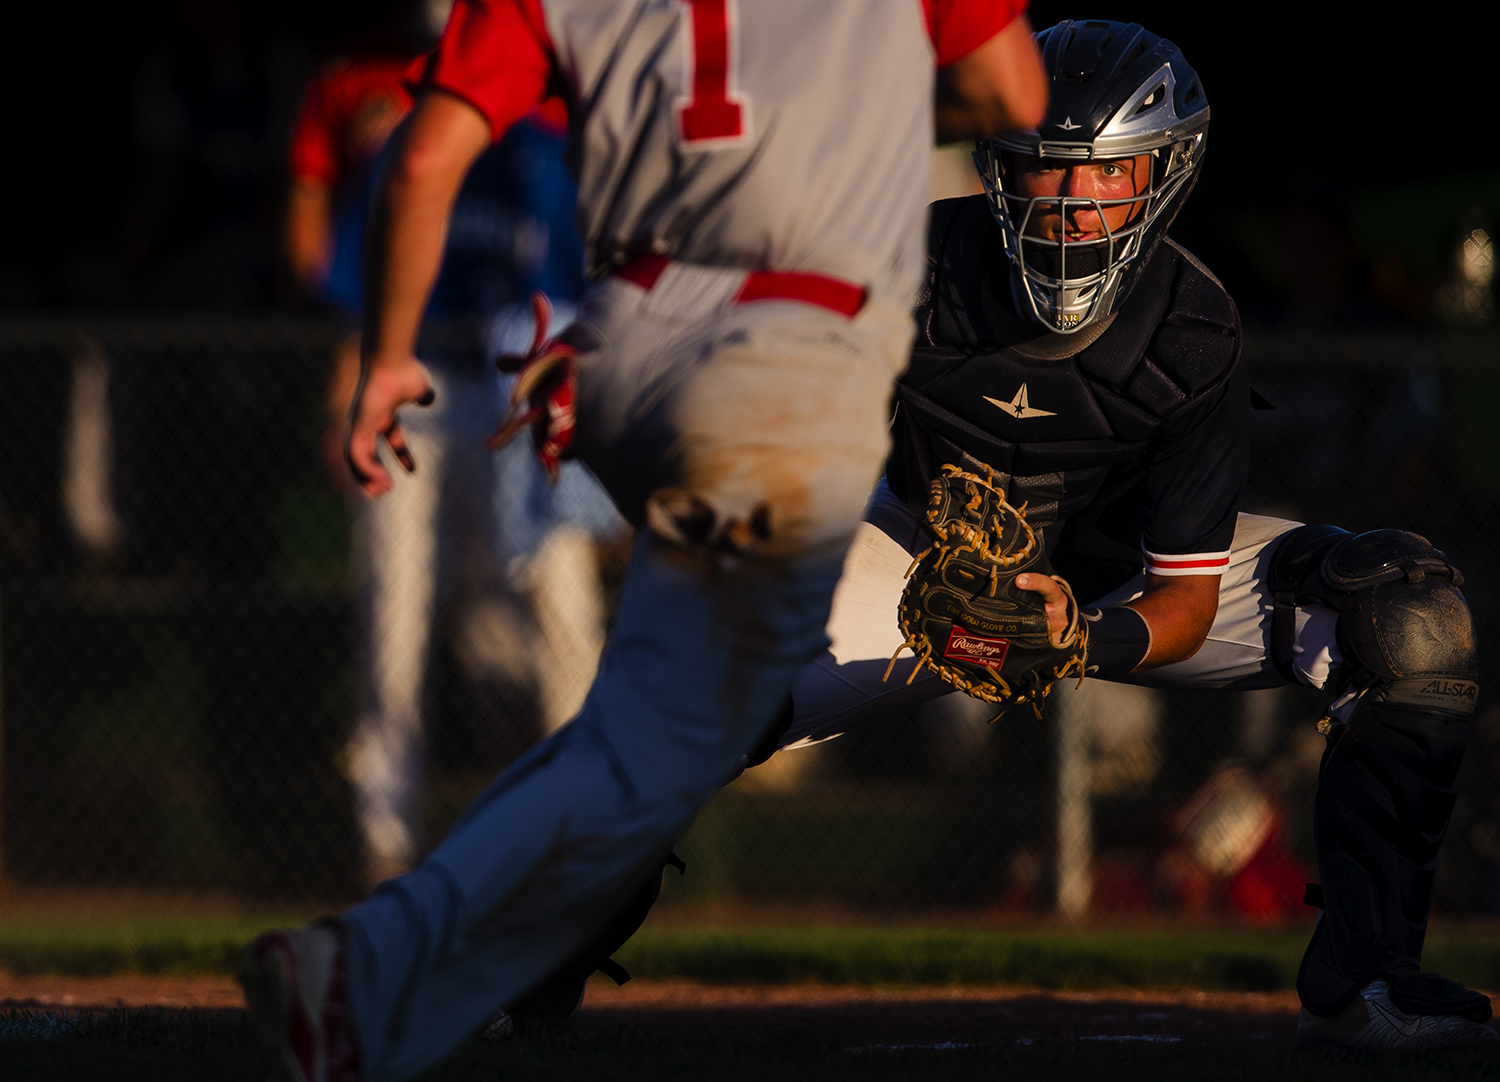 Rochester's Ben Chapman waits at the plate for Pleasant Plains' Cole Greer during the Baseball Classic at Claude Kracik Field June 13. Chapman made the tag. Ted Schurter/The State Journal-Register